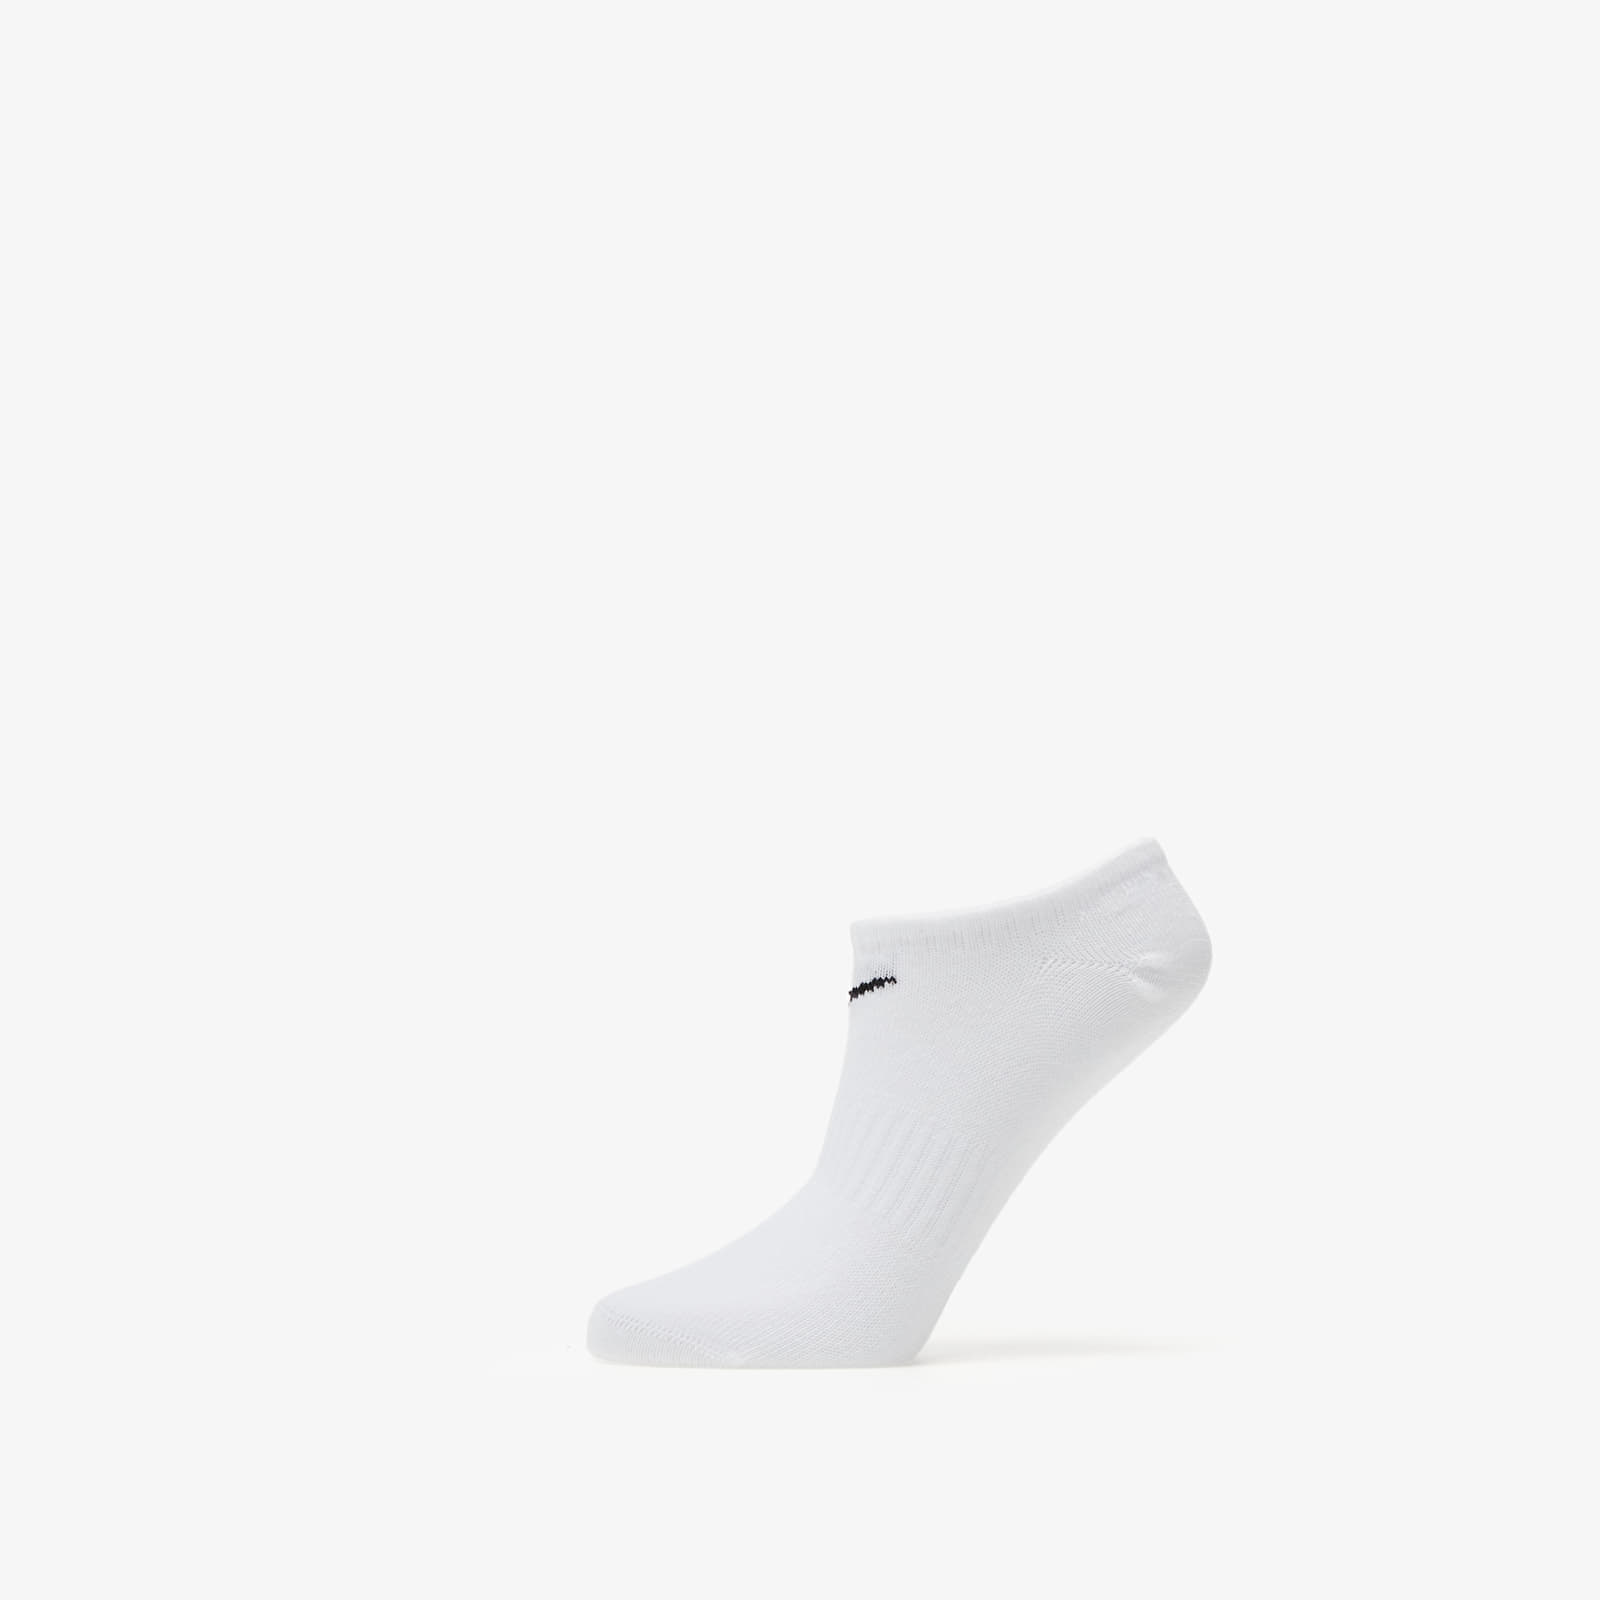 Socks Nike Everyday Cotton Lightweight No Show Socks 3 Pack White